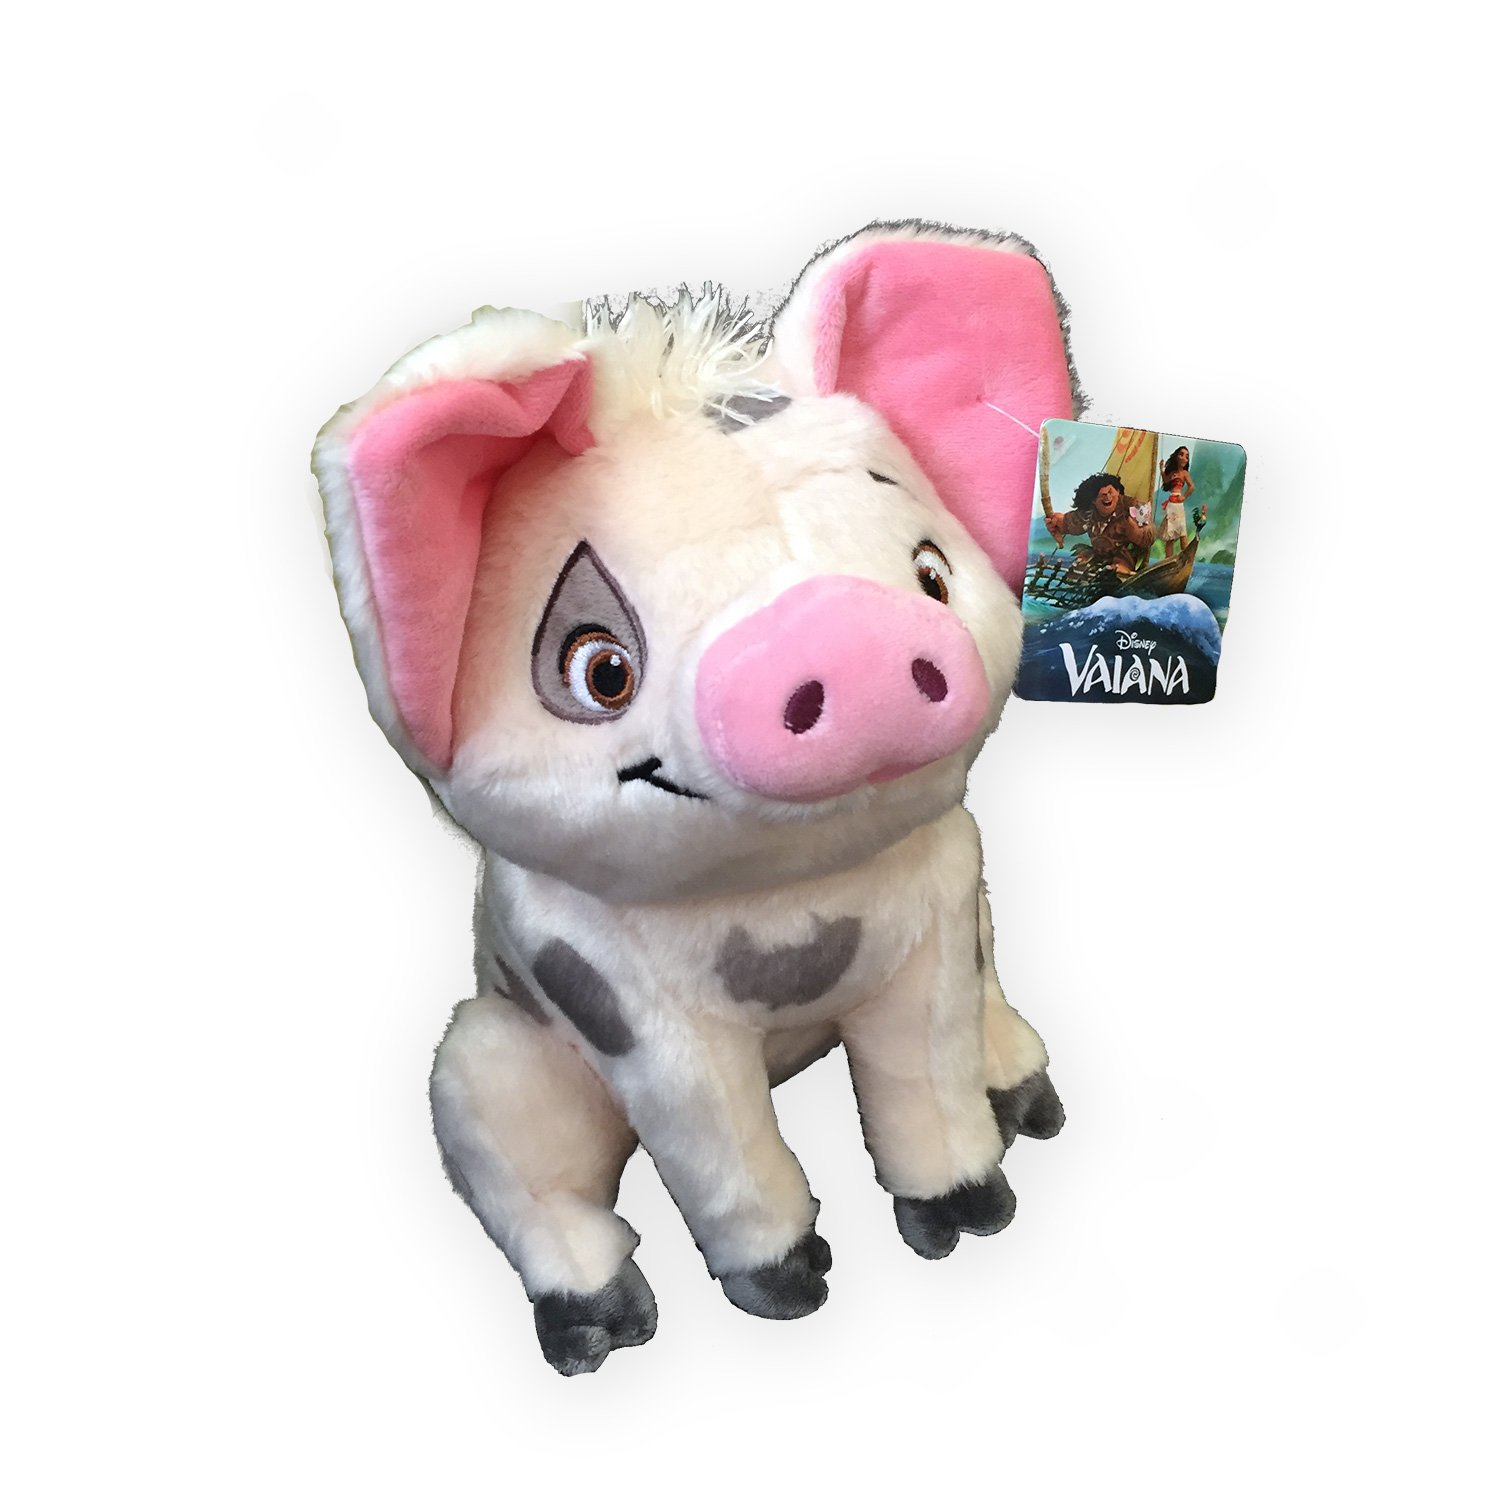 plush pua pig 25cm 10 big disney 2016 movie moana oceania vaiana